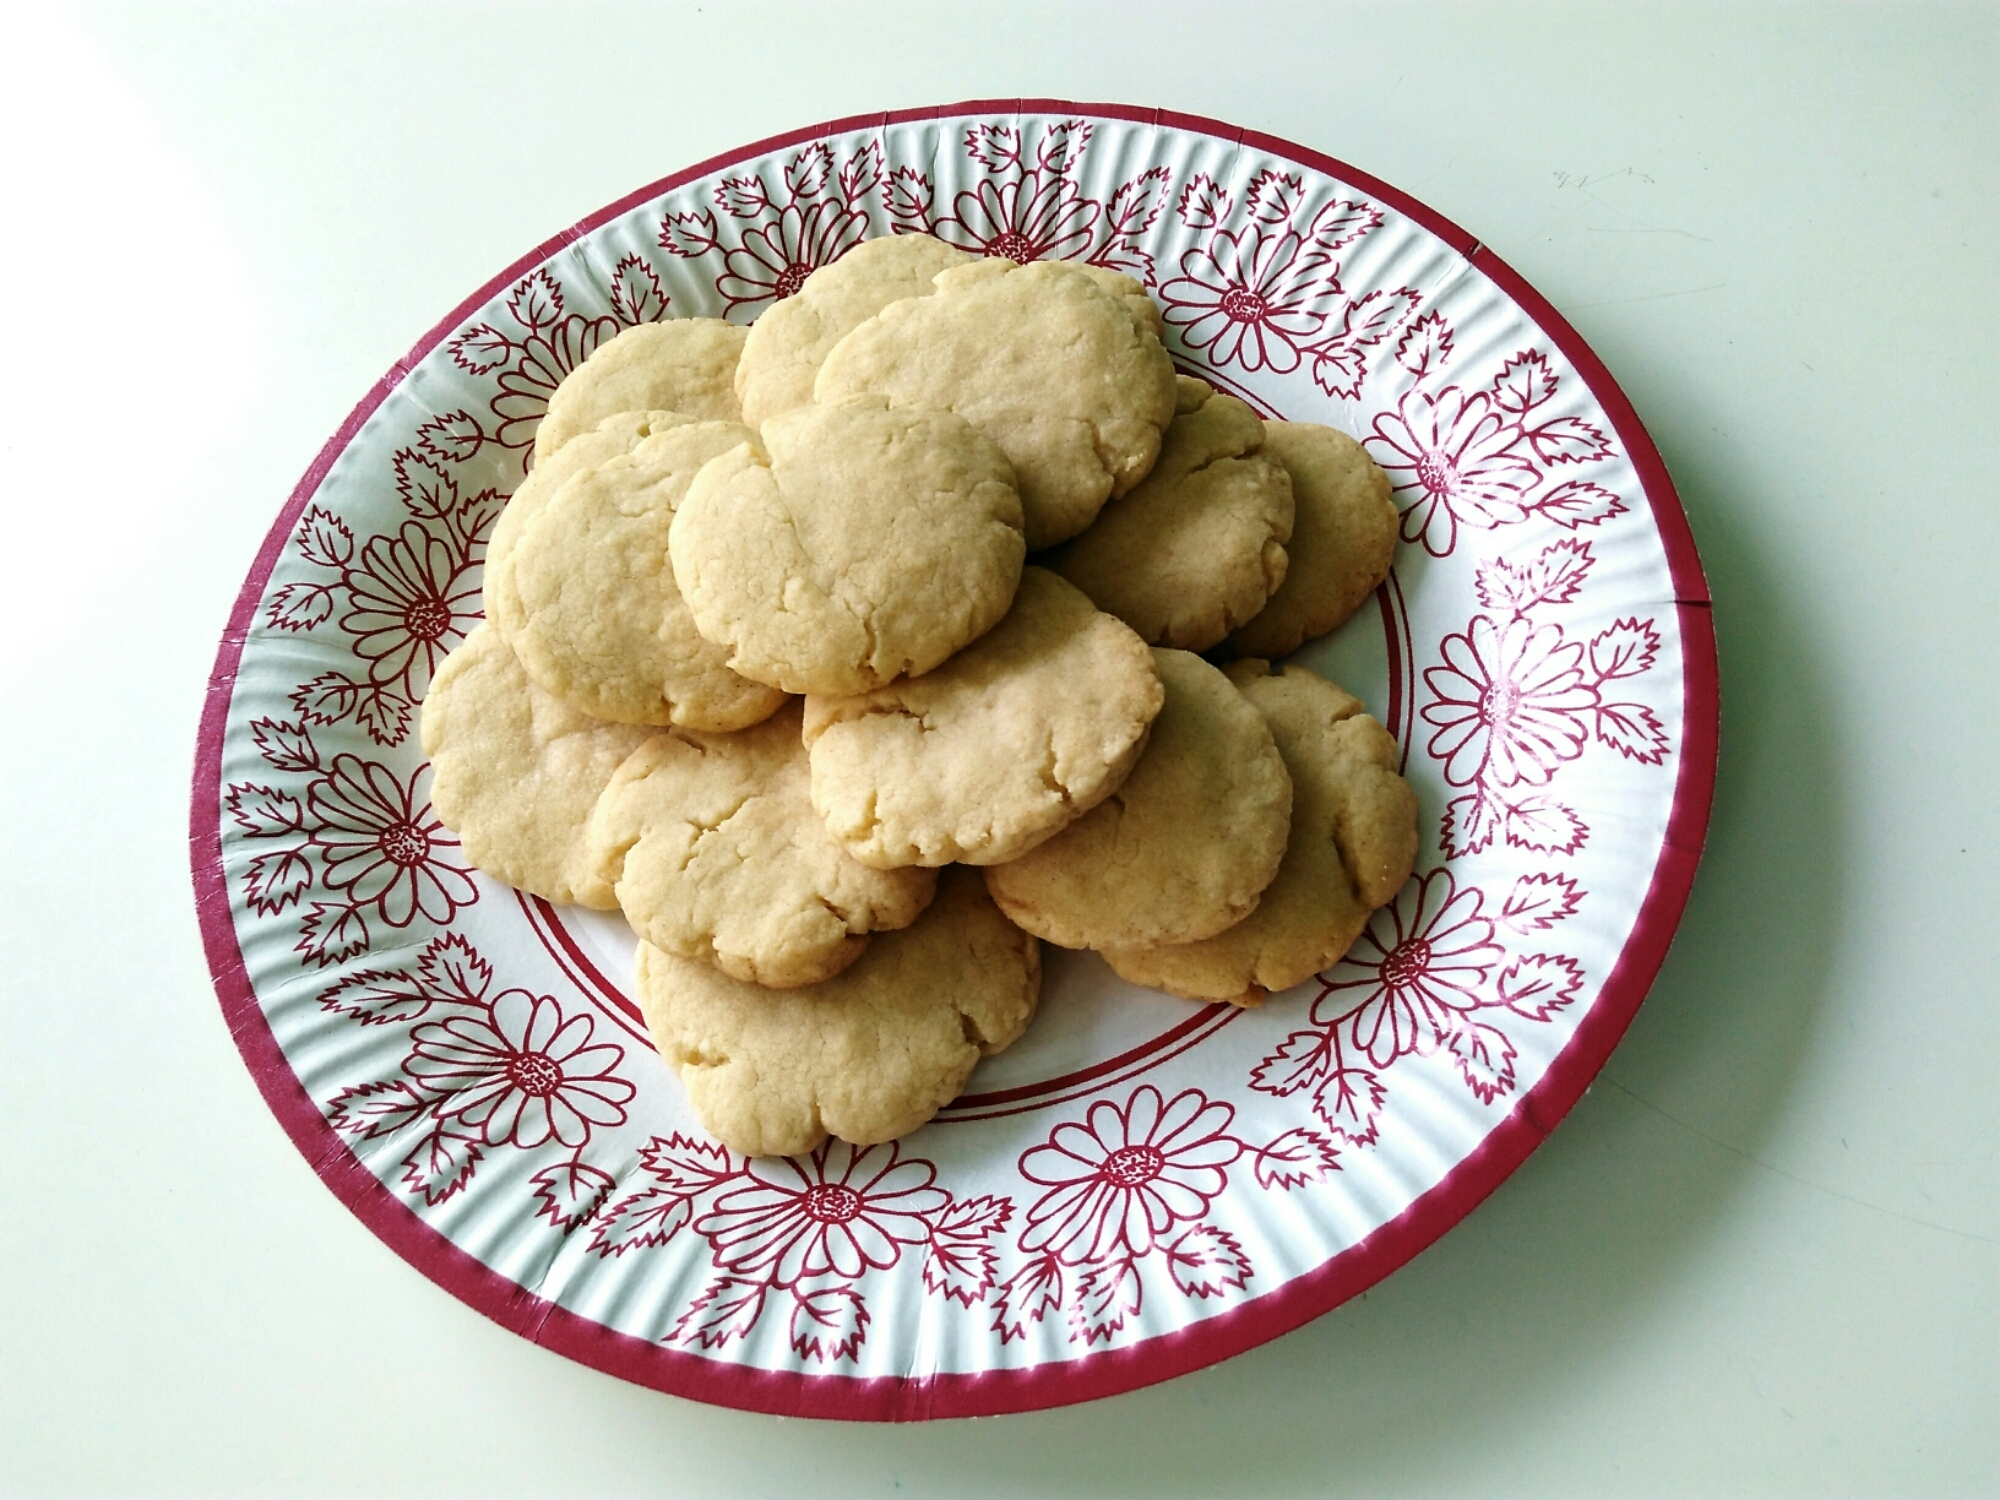 Food: Shortbread cookies